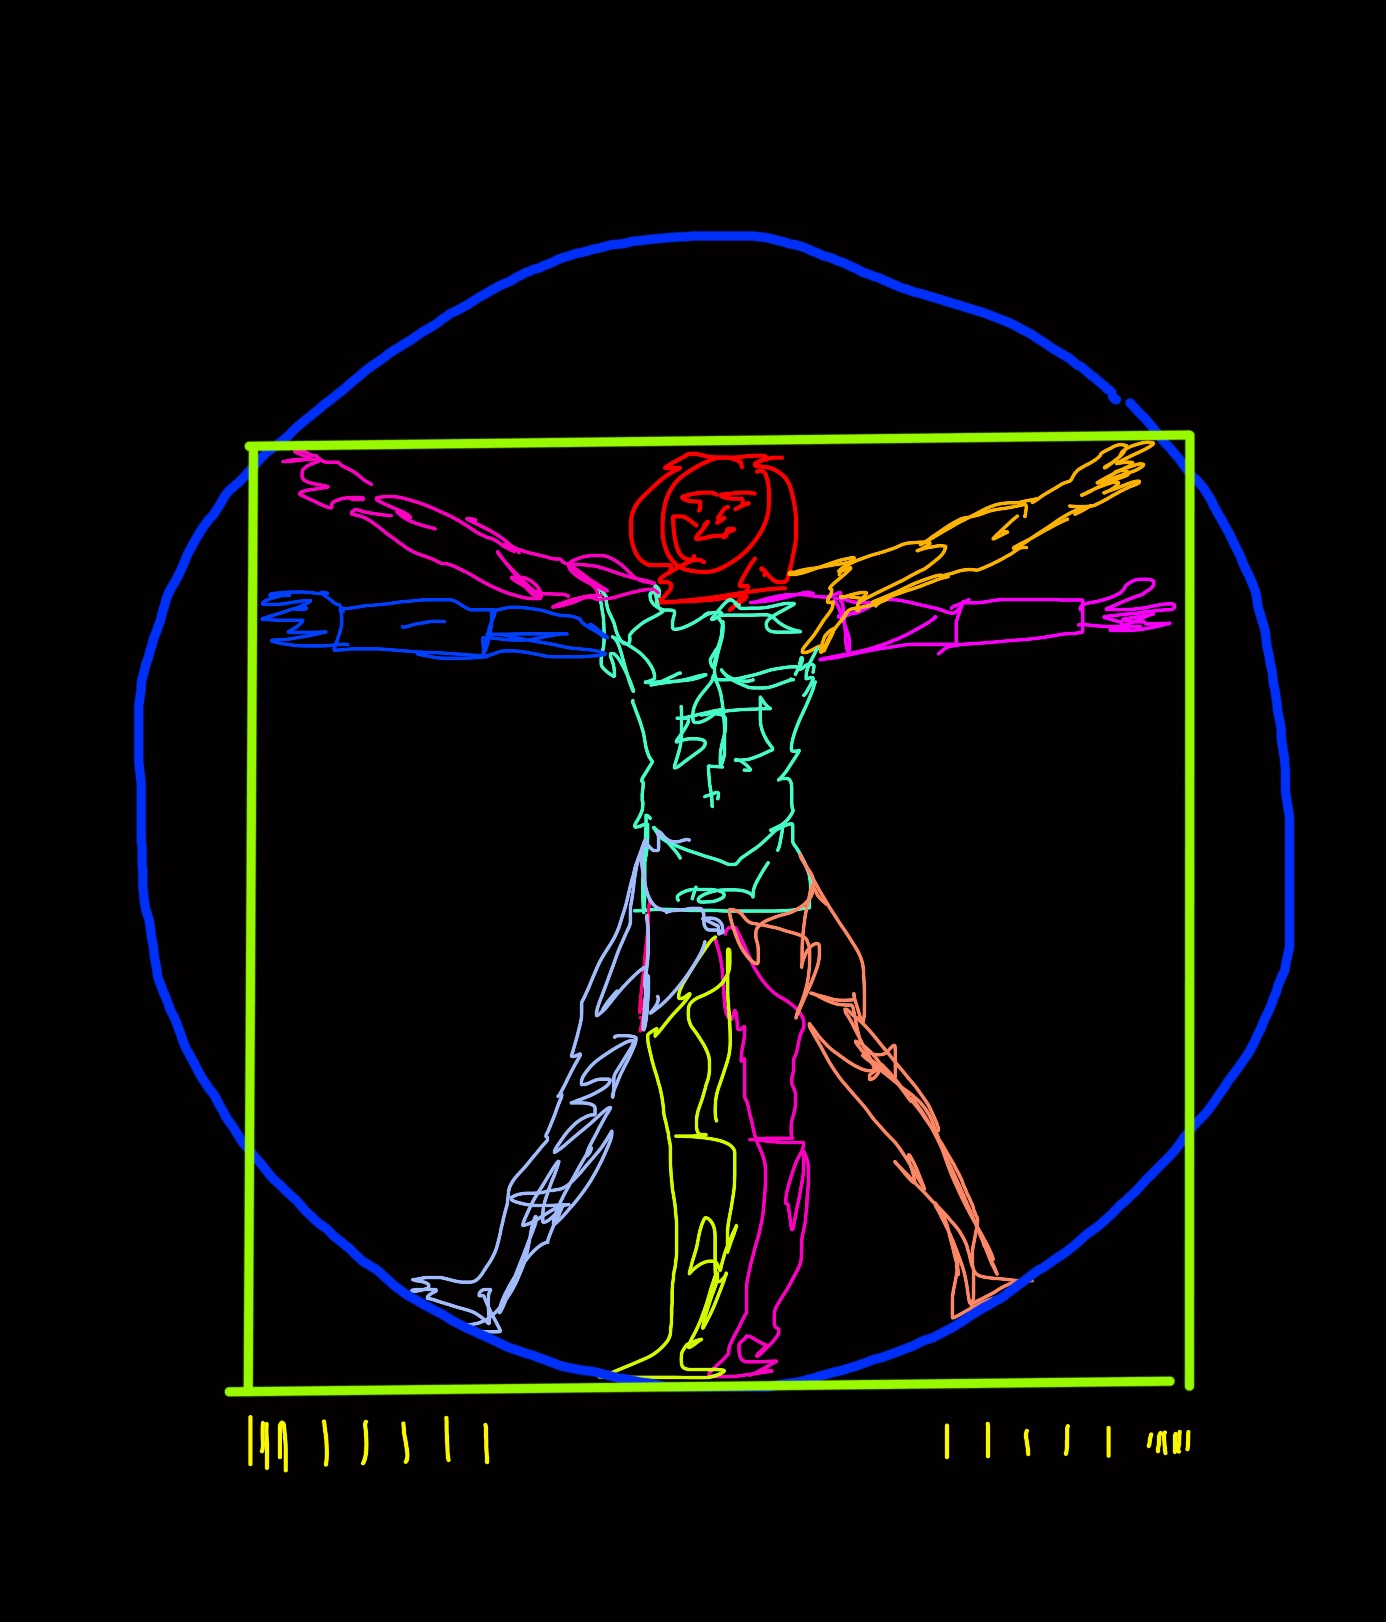 vitruvian man ERIC KIM abstract